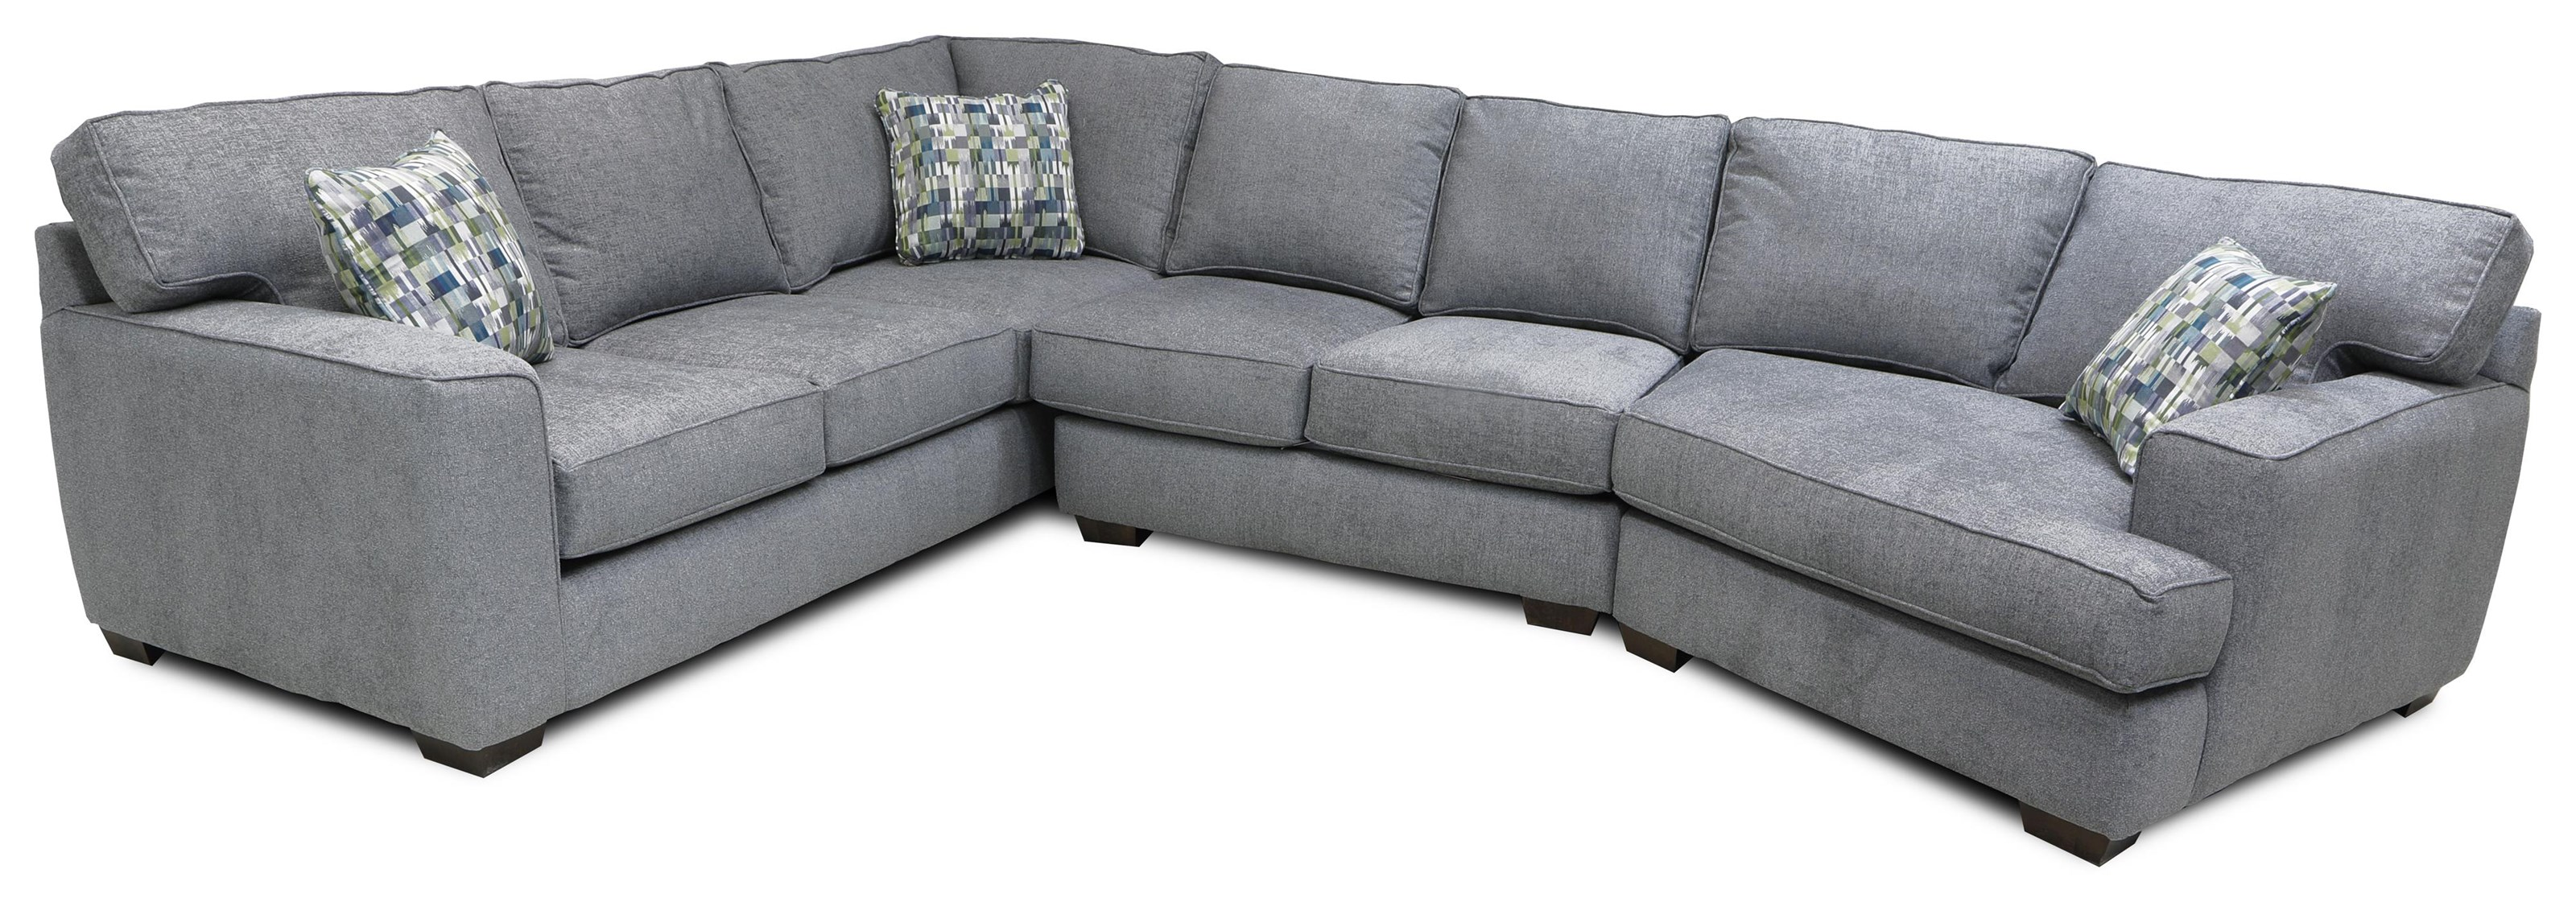 Wellington Sectional Group by Metropia at Ruby Gordon Home